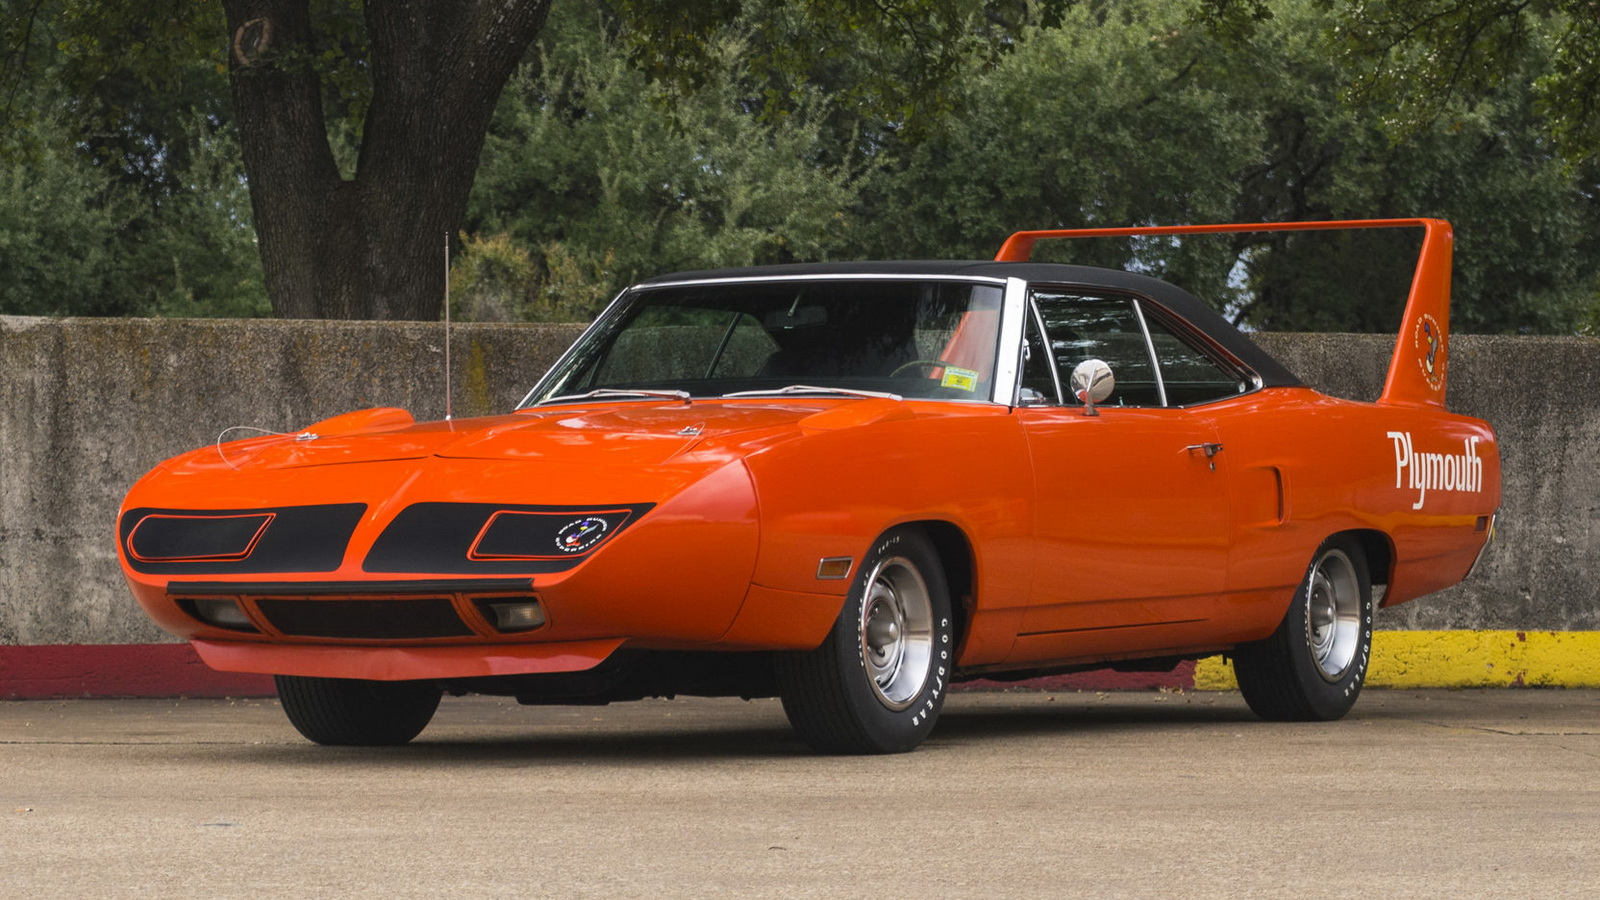 Plymouth Hemi Superbird 1970 in auction (1)